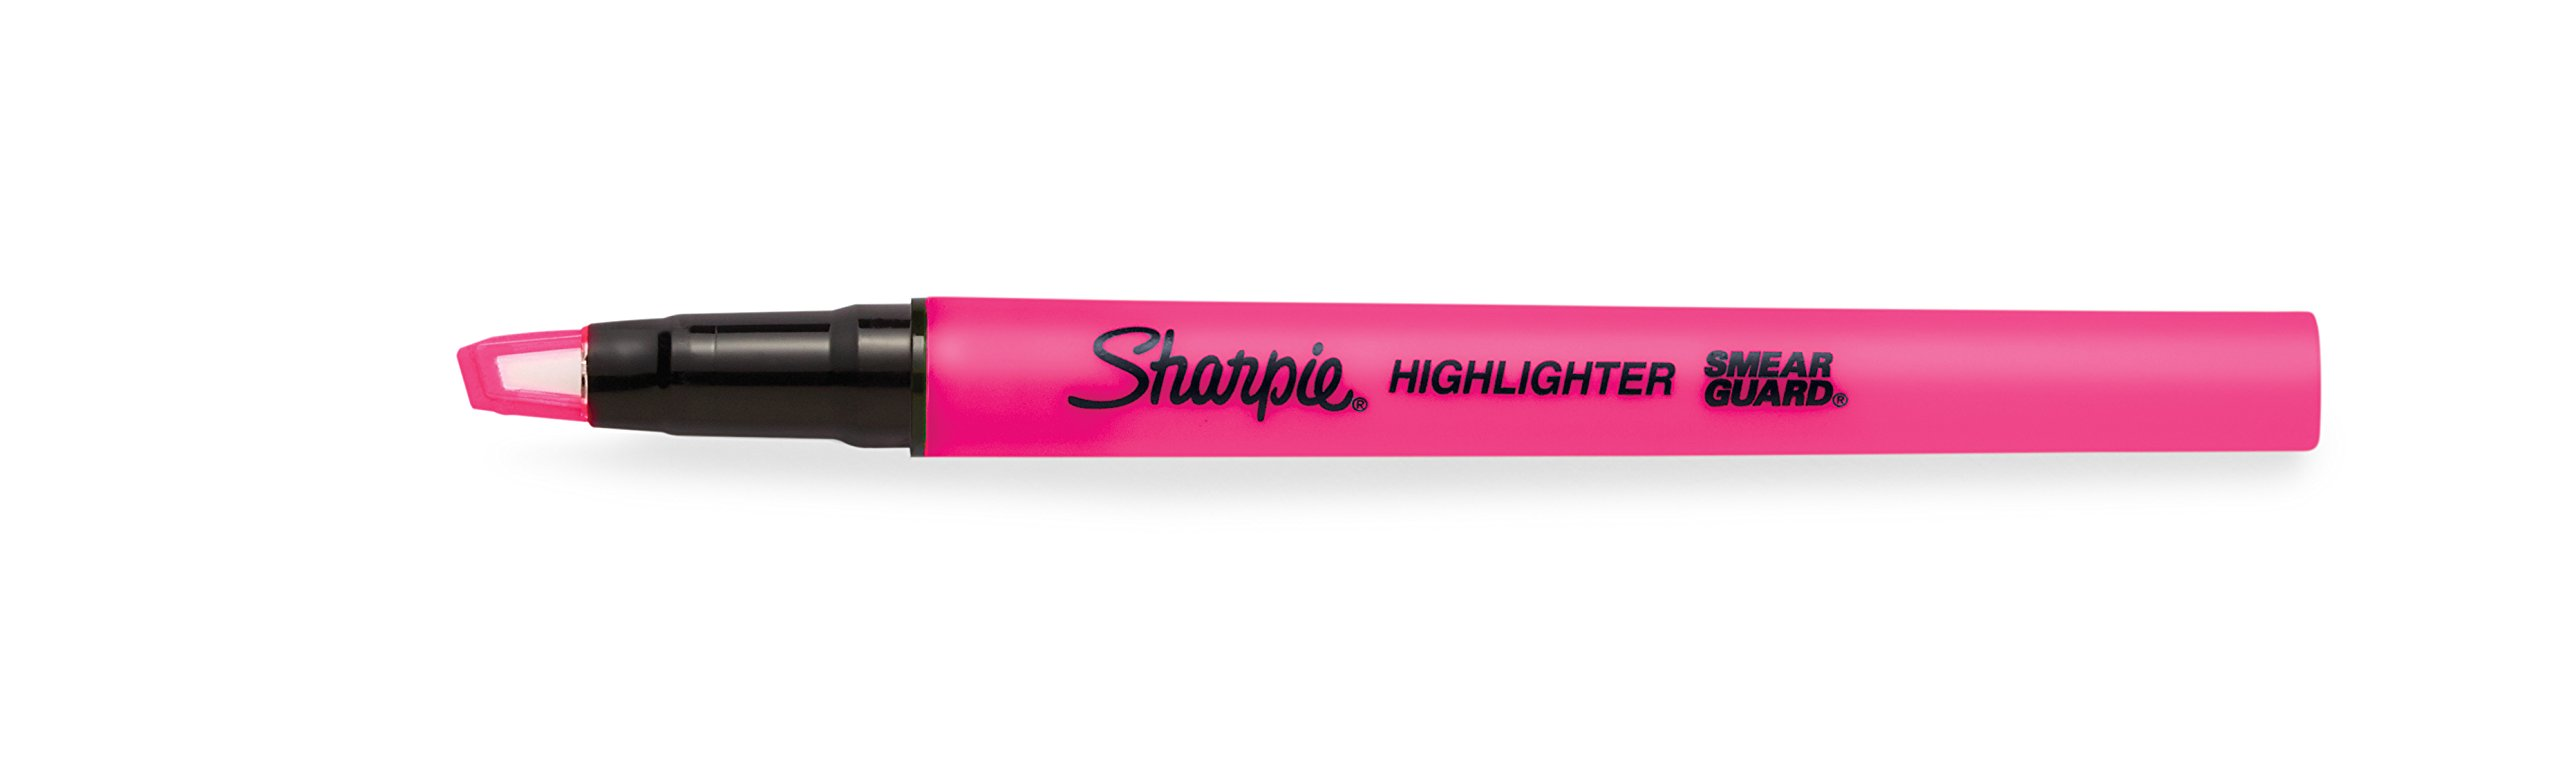 Sharpie Clear View Highlighter Stick, Assorted, 8 Pack (1966798) by Sharpie (Image #9)